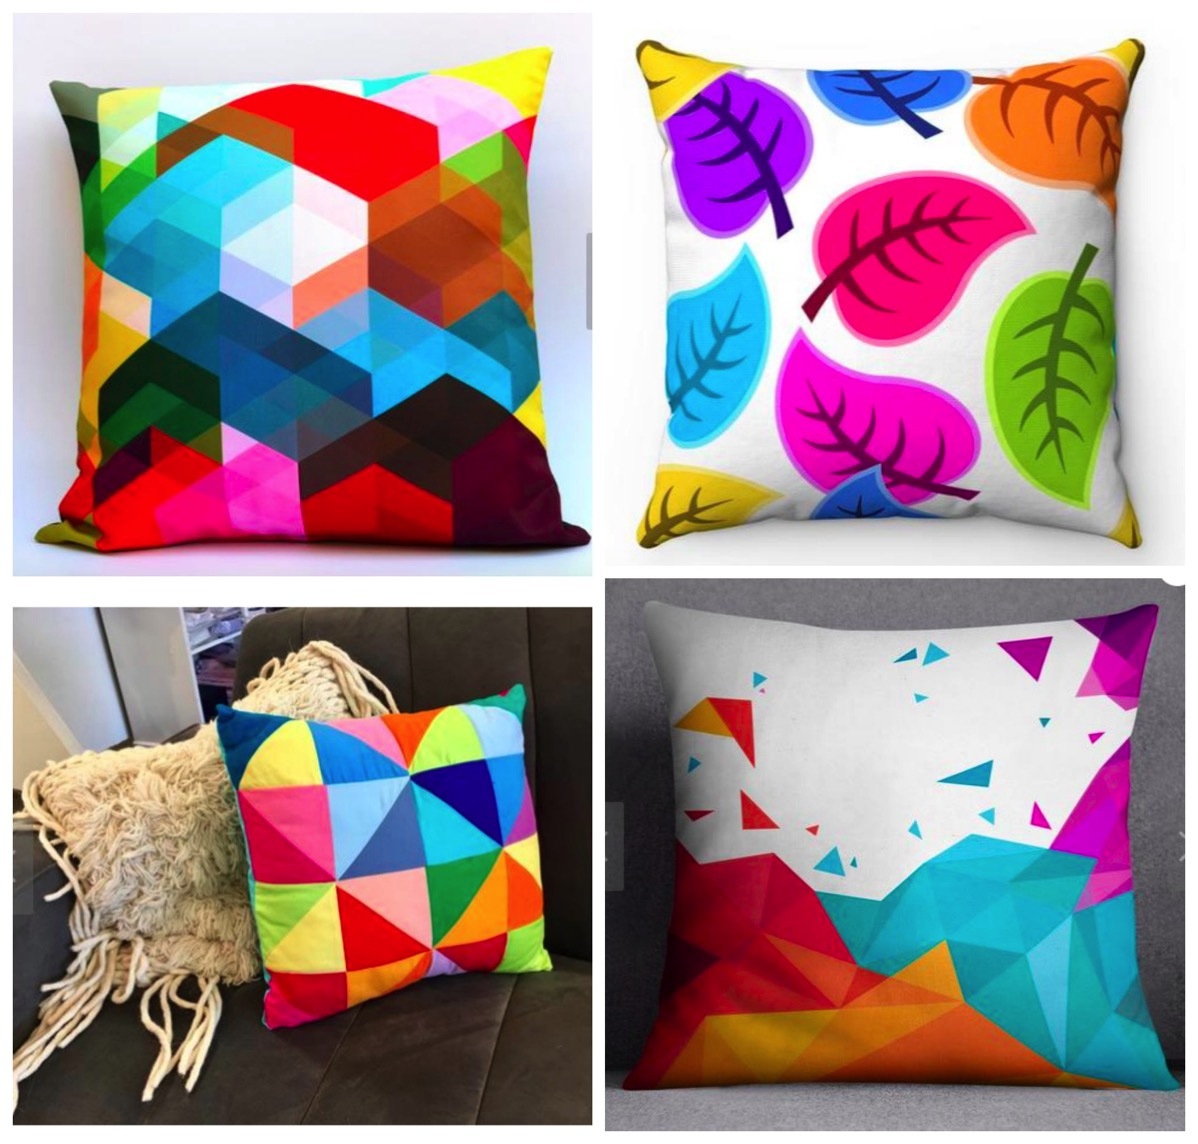 Colorful geometric decorative pillows for colorful bold eclectic home dig and hang